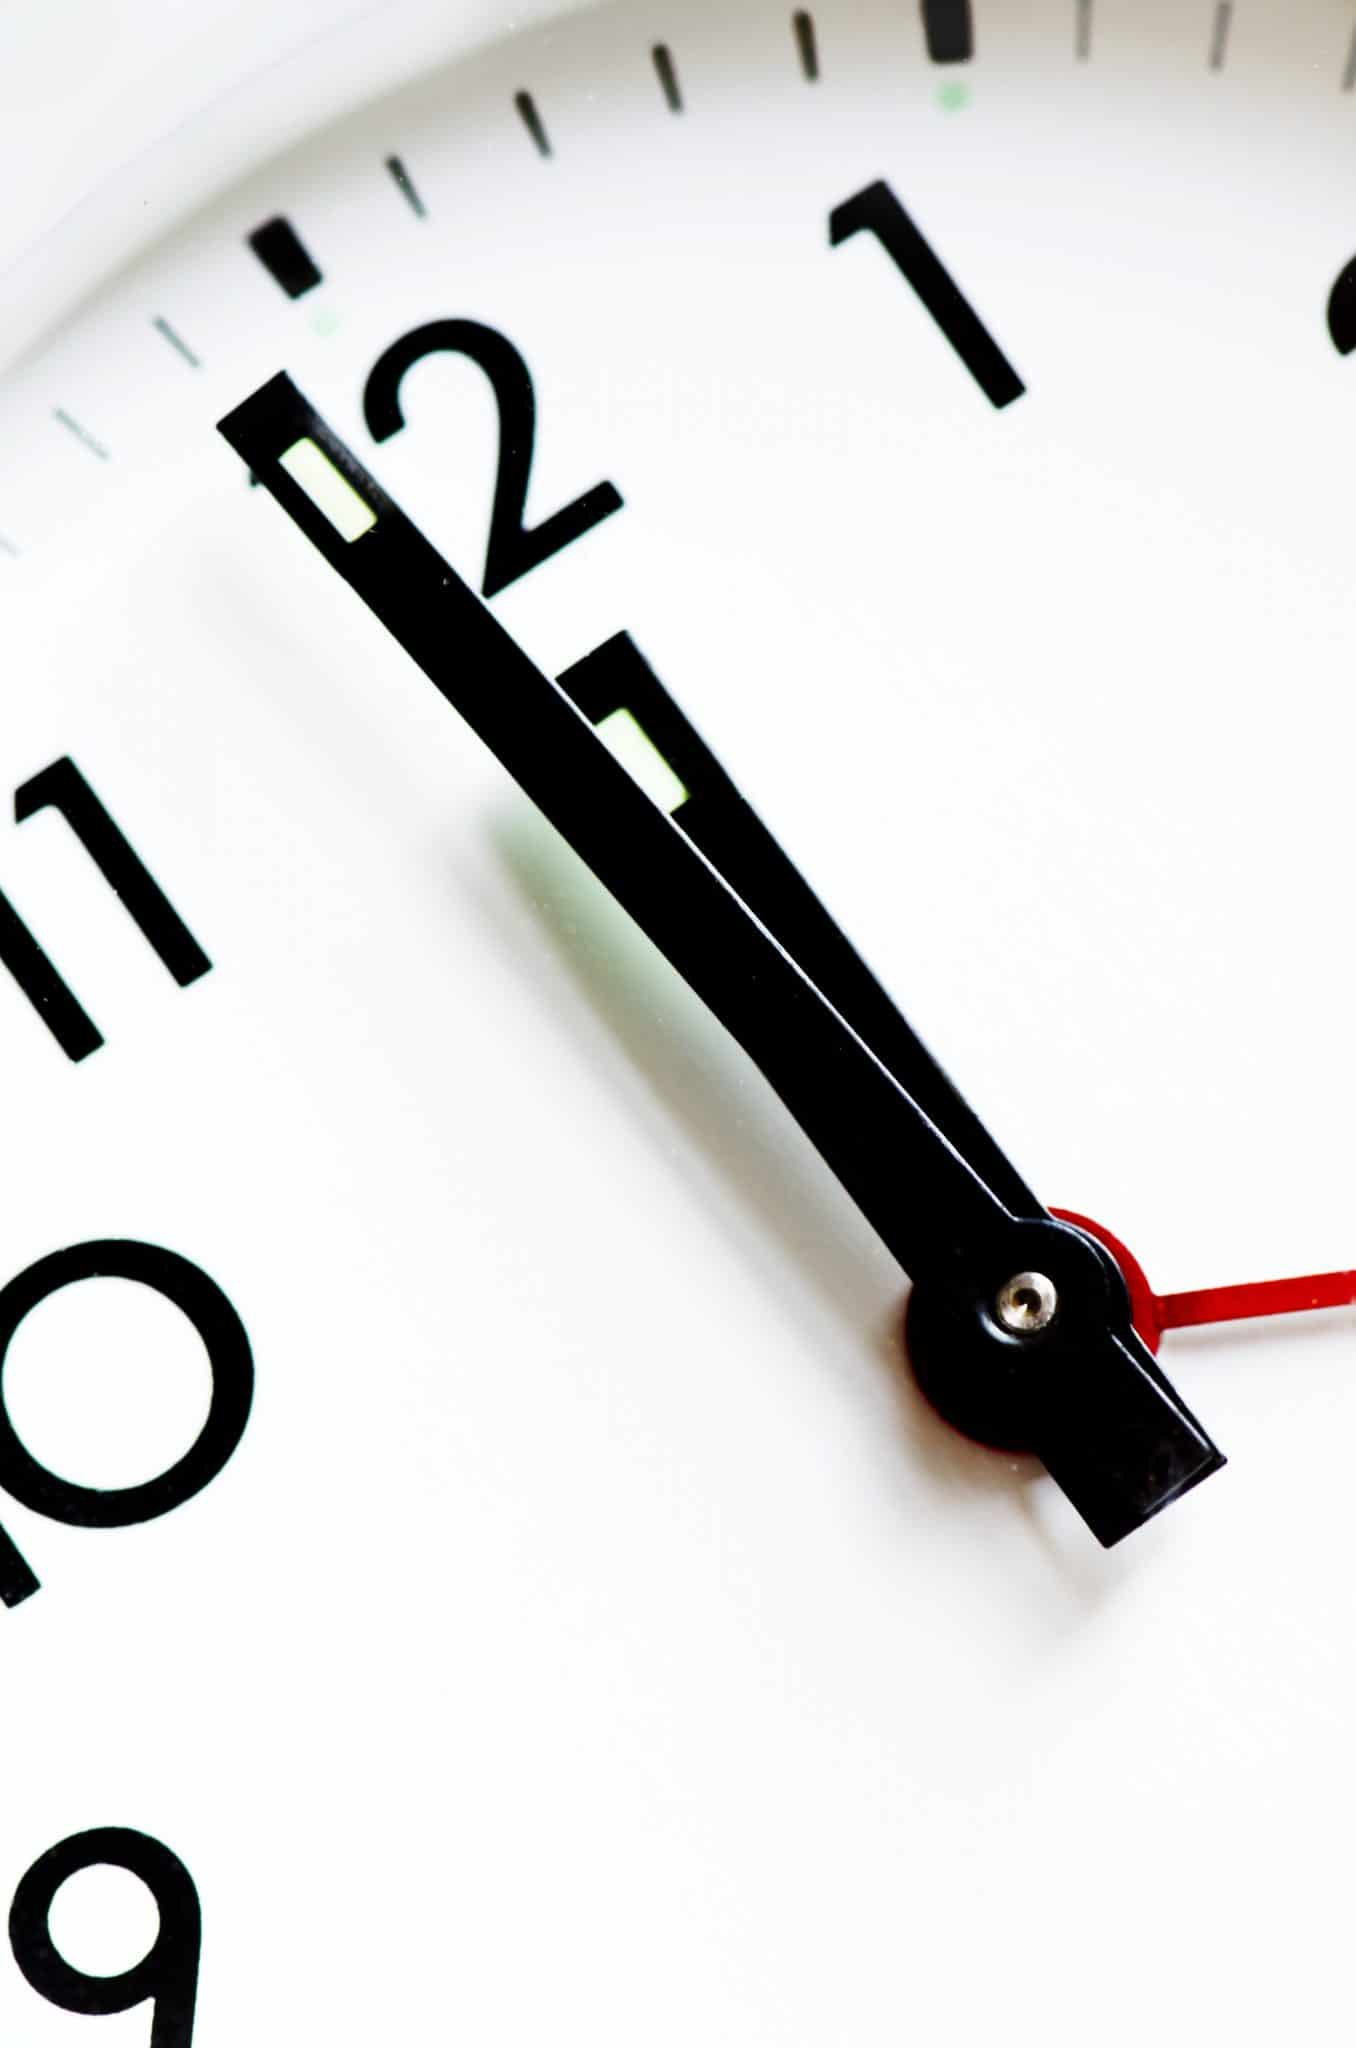 The Final Countdown toSeniorManagers and Certificate Regime (SM&CR)